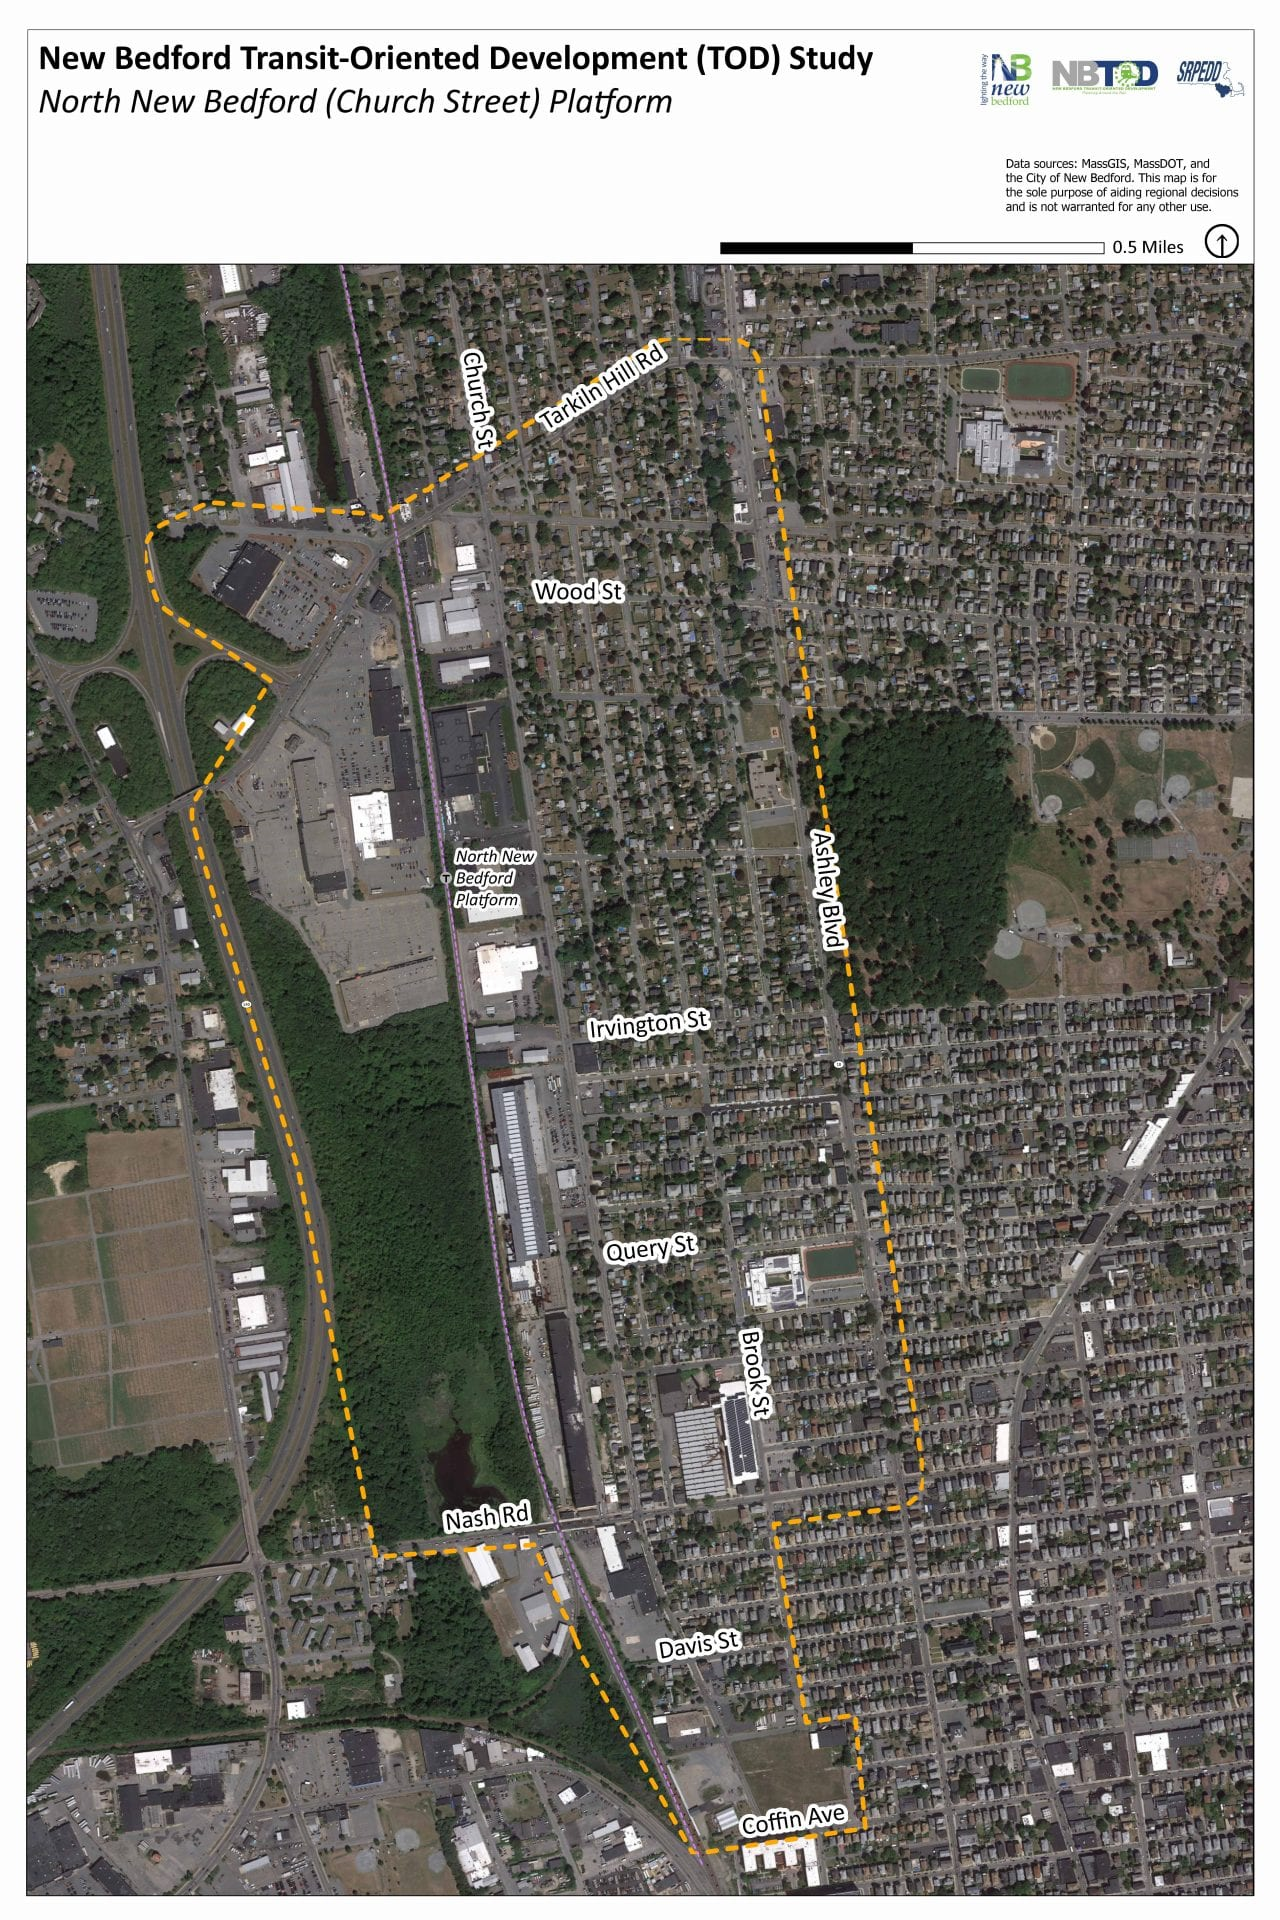 North New Bedford Station Base Ortho Map 011420